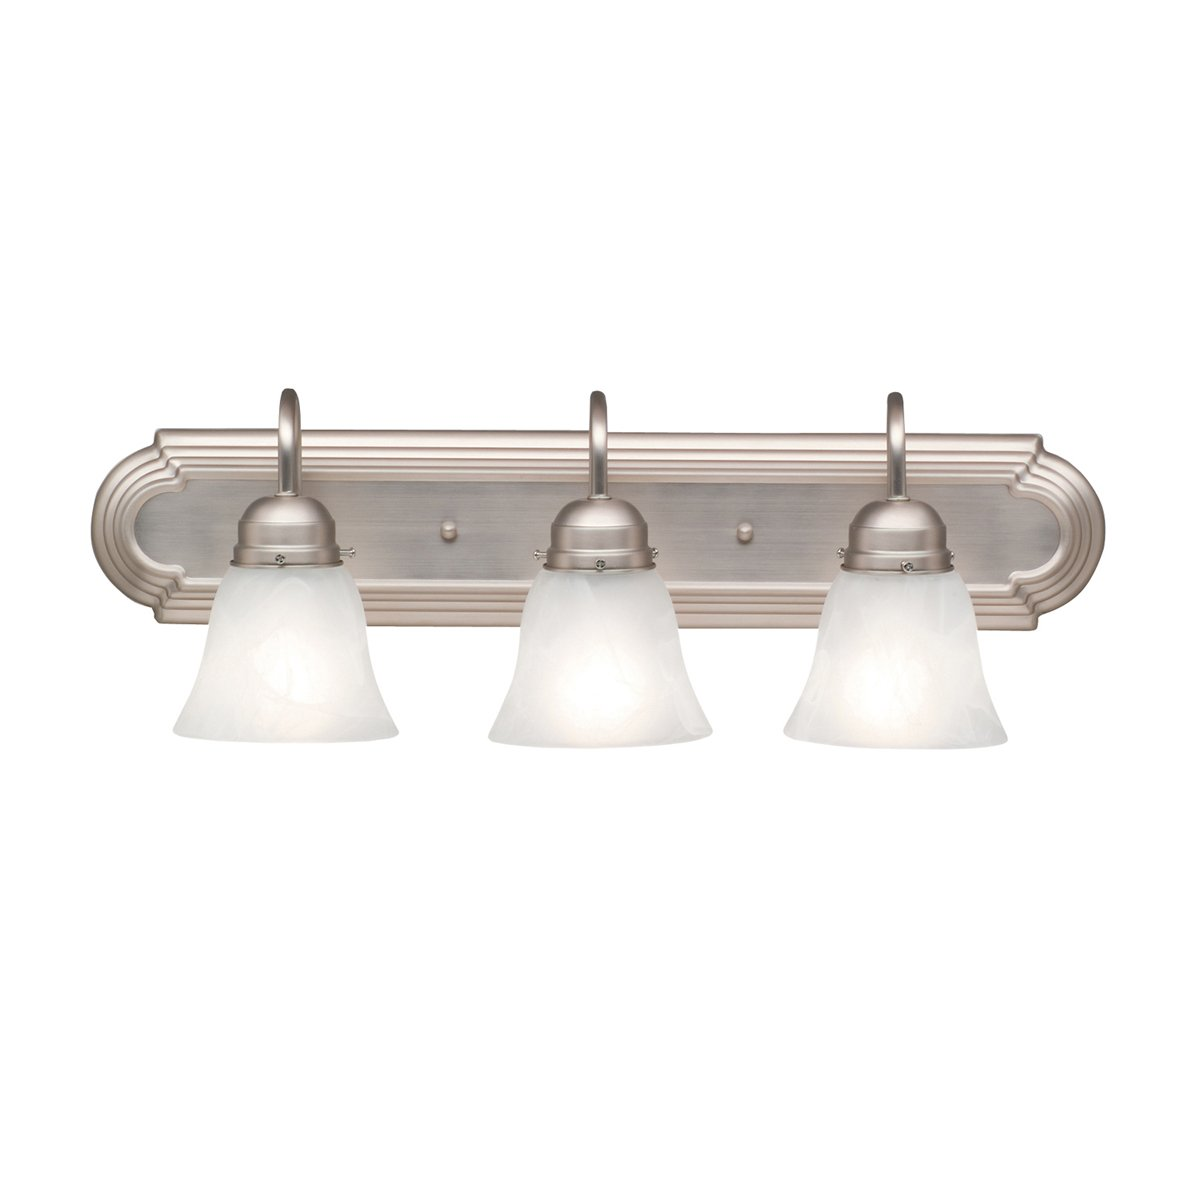 Kichler NI Bath Light Brushed Nickel Vanity Lighting - Brushed nickel bathroom light fixtures sale